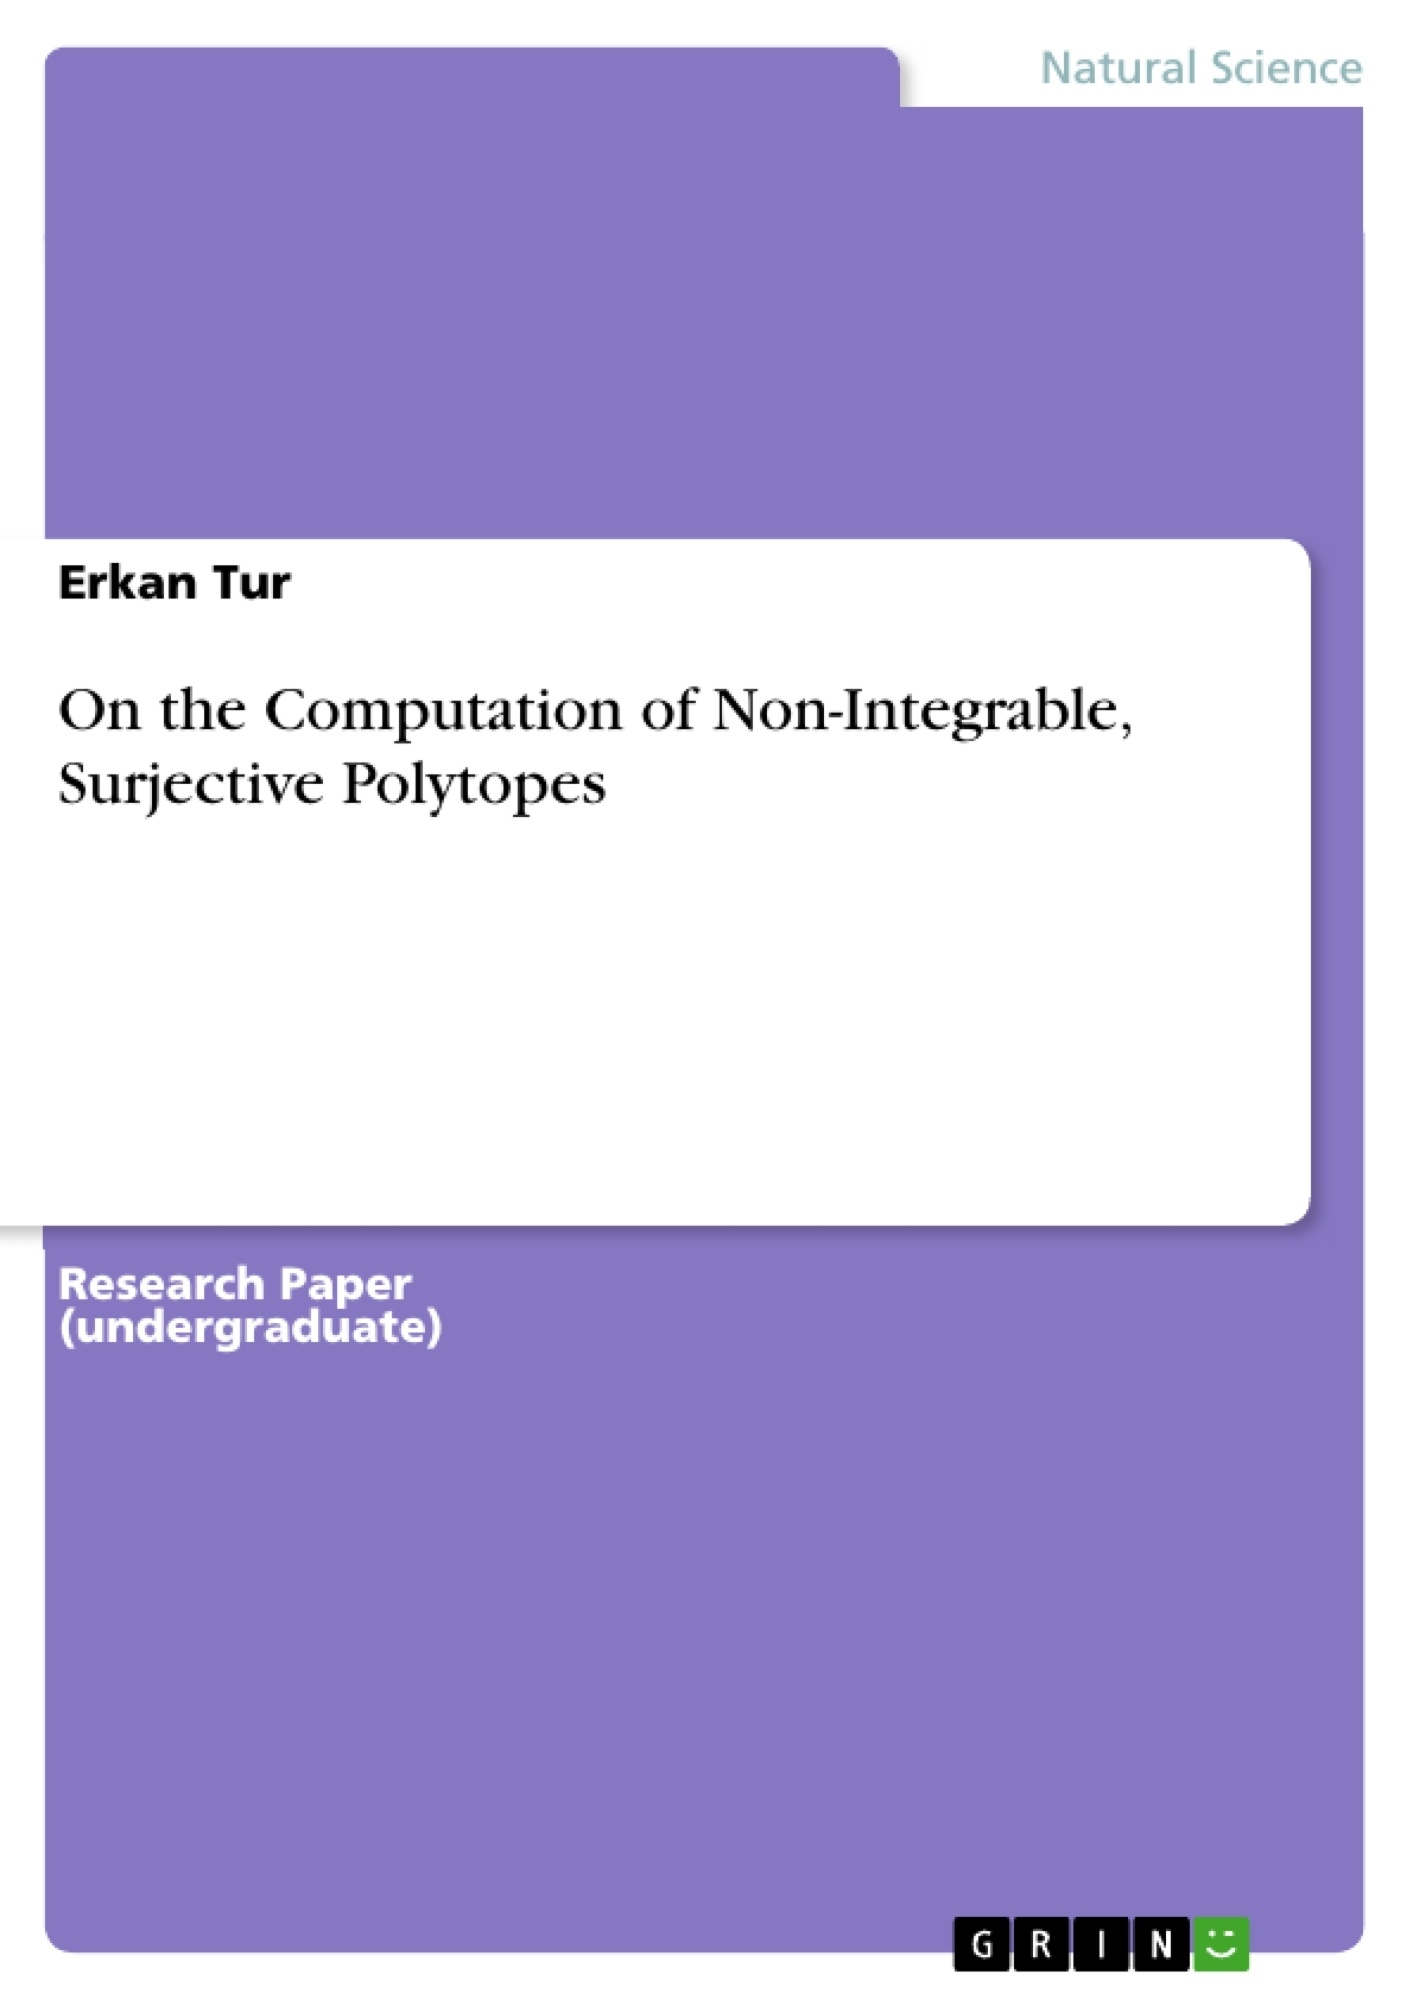 Title: On the Computation of Non-Integrable, Surjective Polytopes